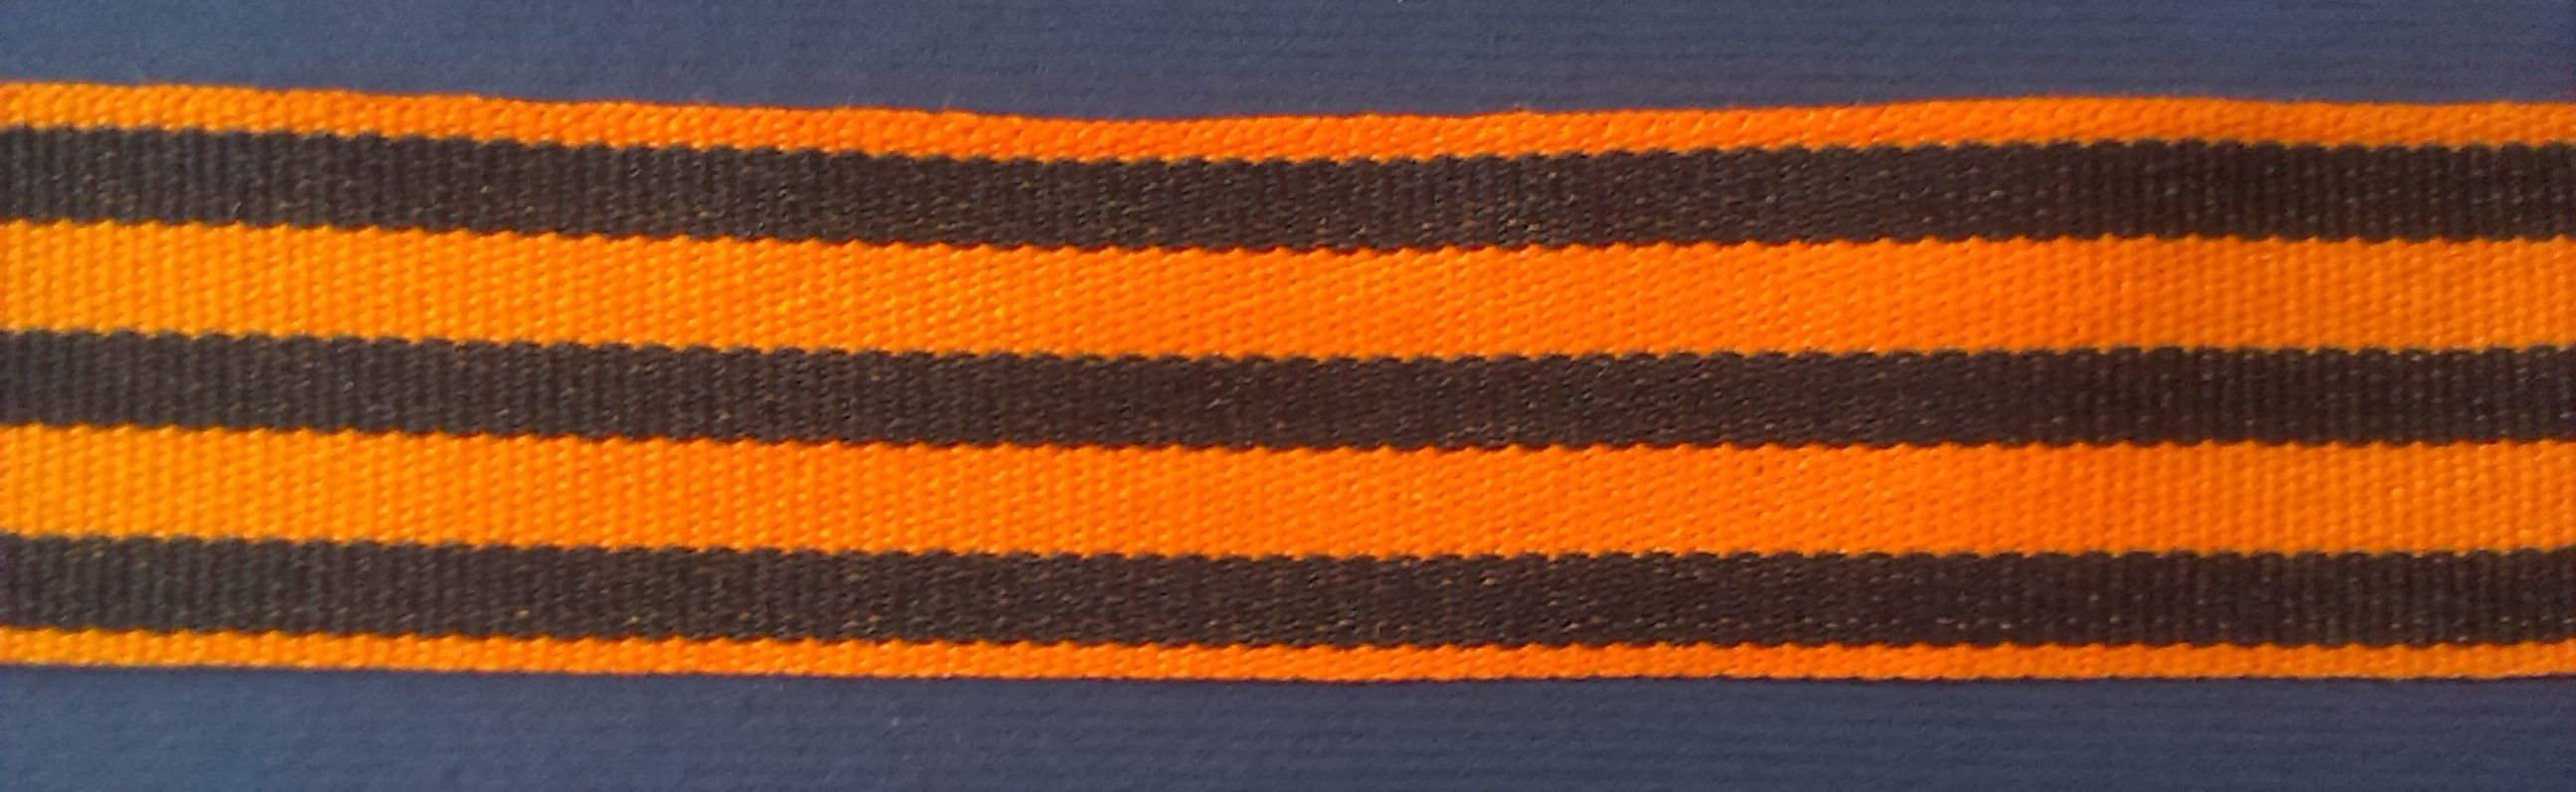 gergian-ribbon.jpg